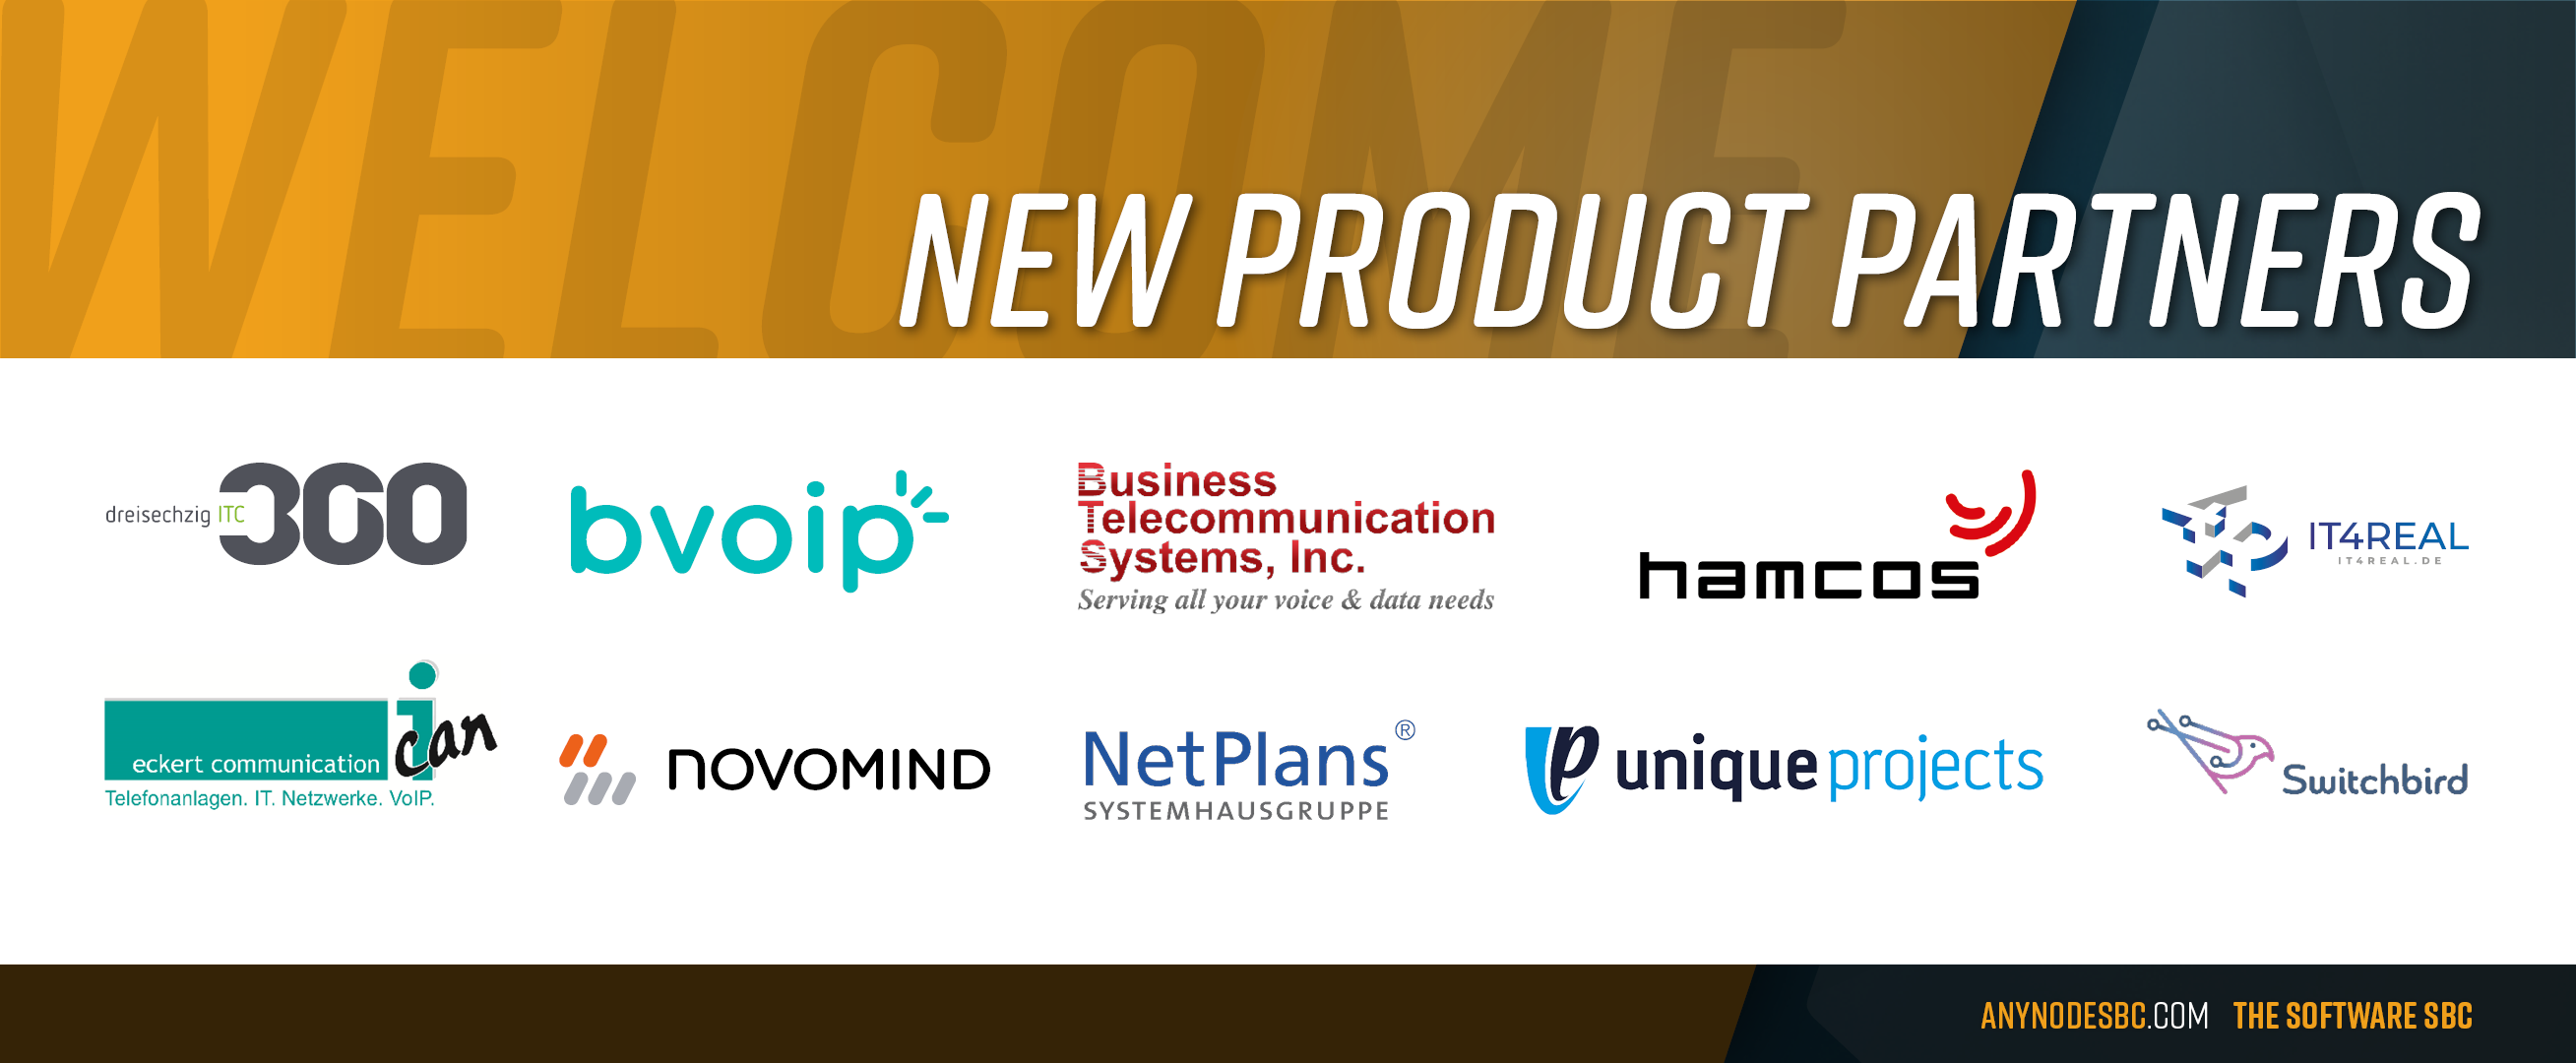 New anynode Product Partners in February 2021!